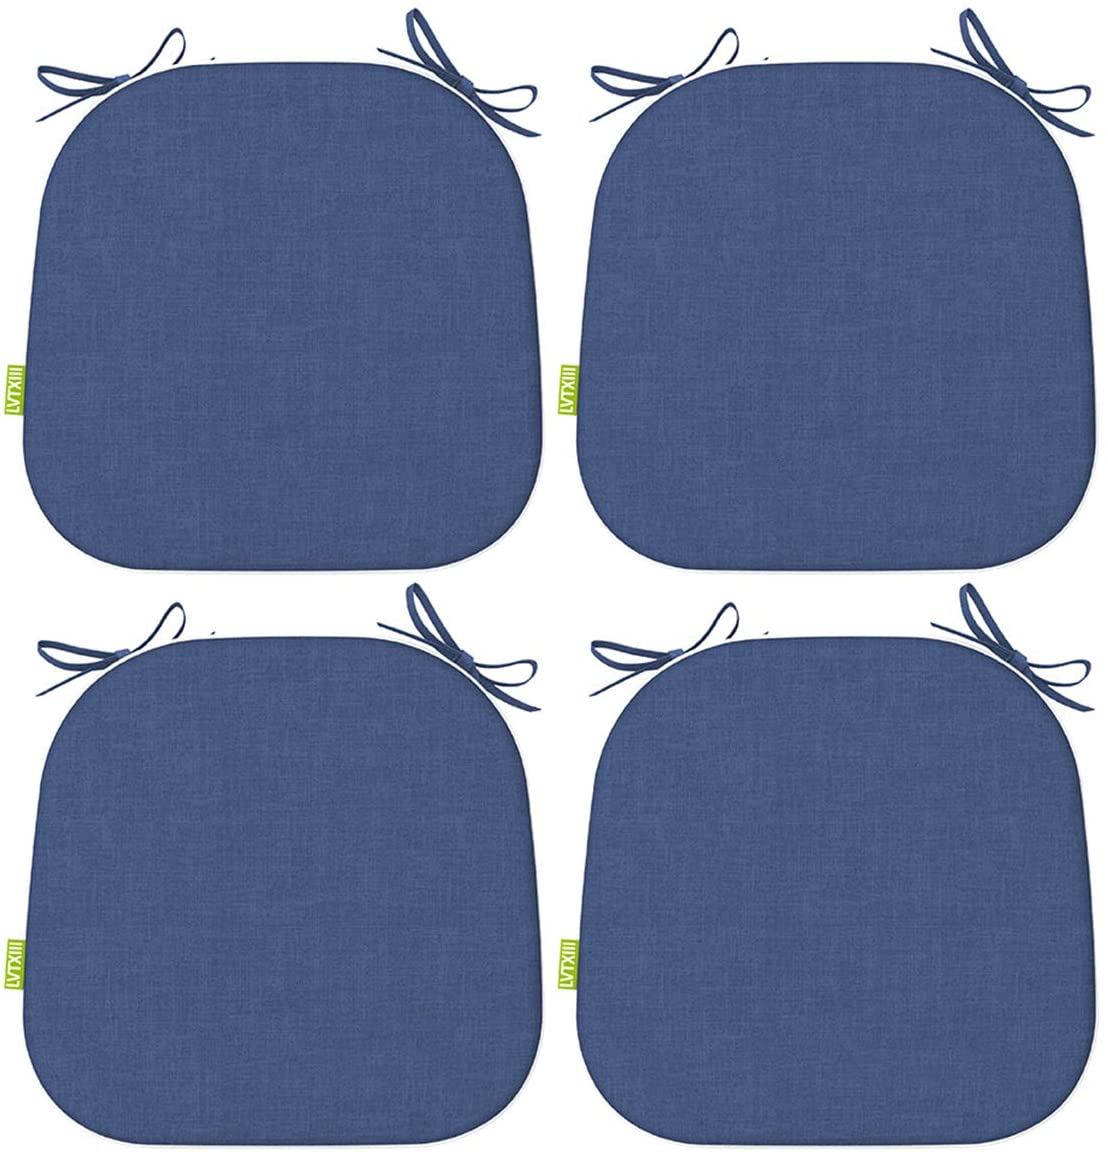 LVTXIII Patio Seat Cushions 16 x 17 Inches Outdoor Chair Pads All Weather Chair Cushions for Garden Patio Furniture Chair Home Set of 4 – Navy Textured